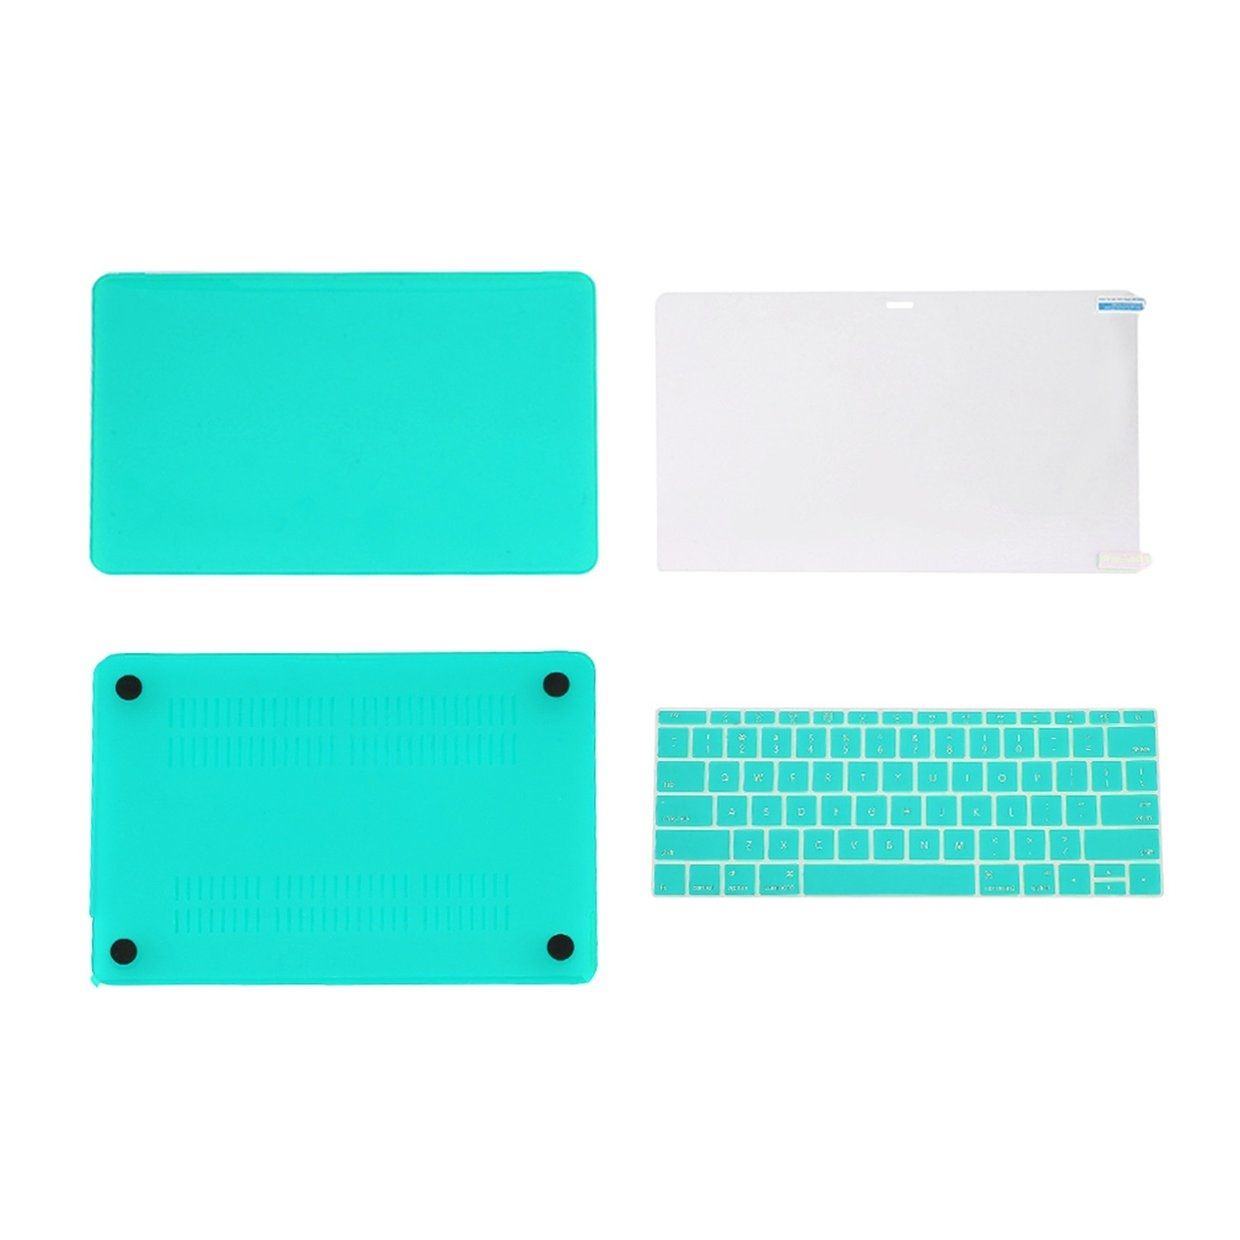 a136b77ccdf5e Generic OR Laptop Sleeve Case Hard Cover Suitable For Macbook 12 Inch  Notebook-white Blue